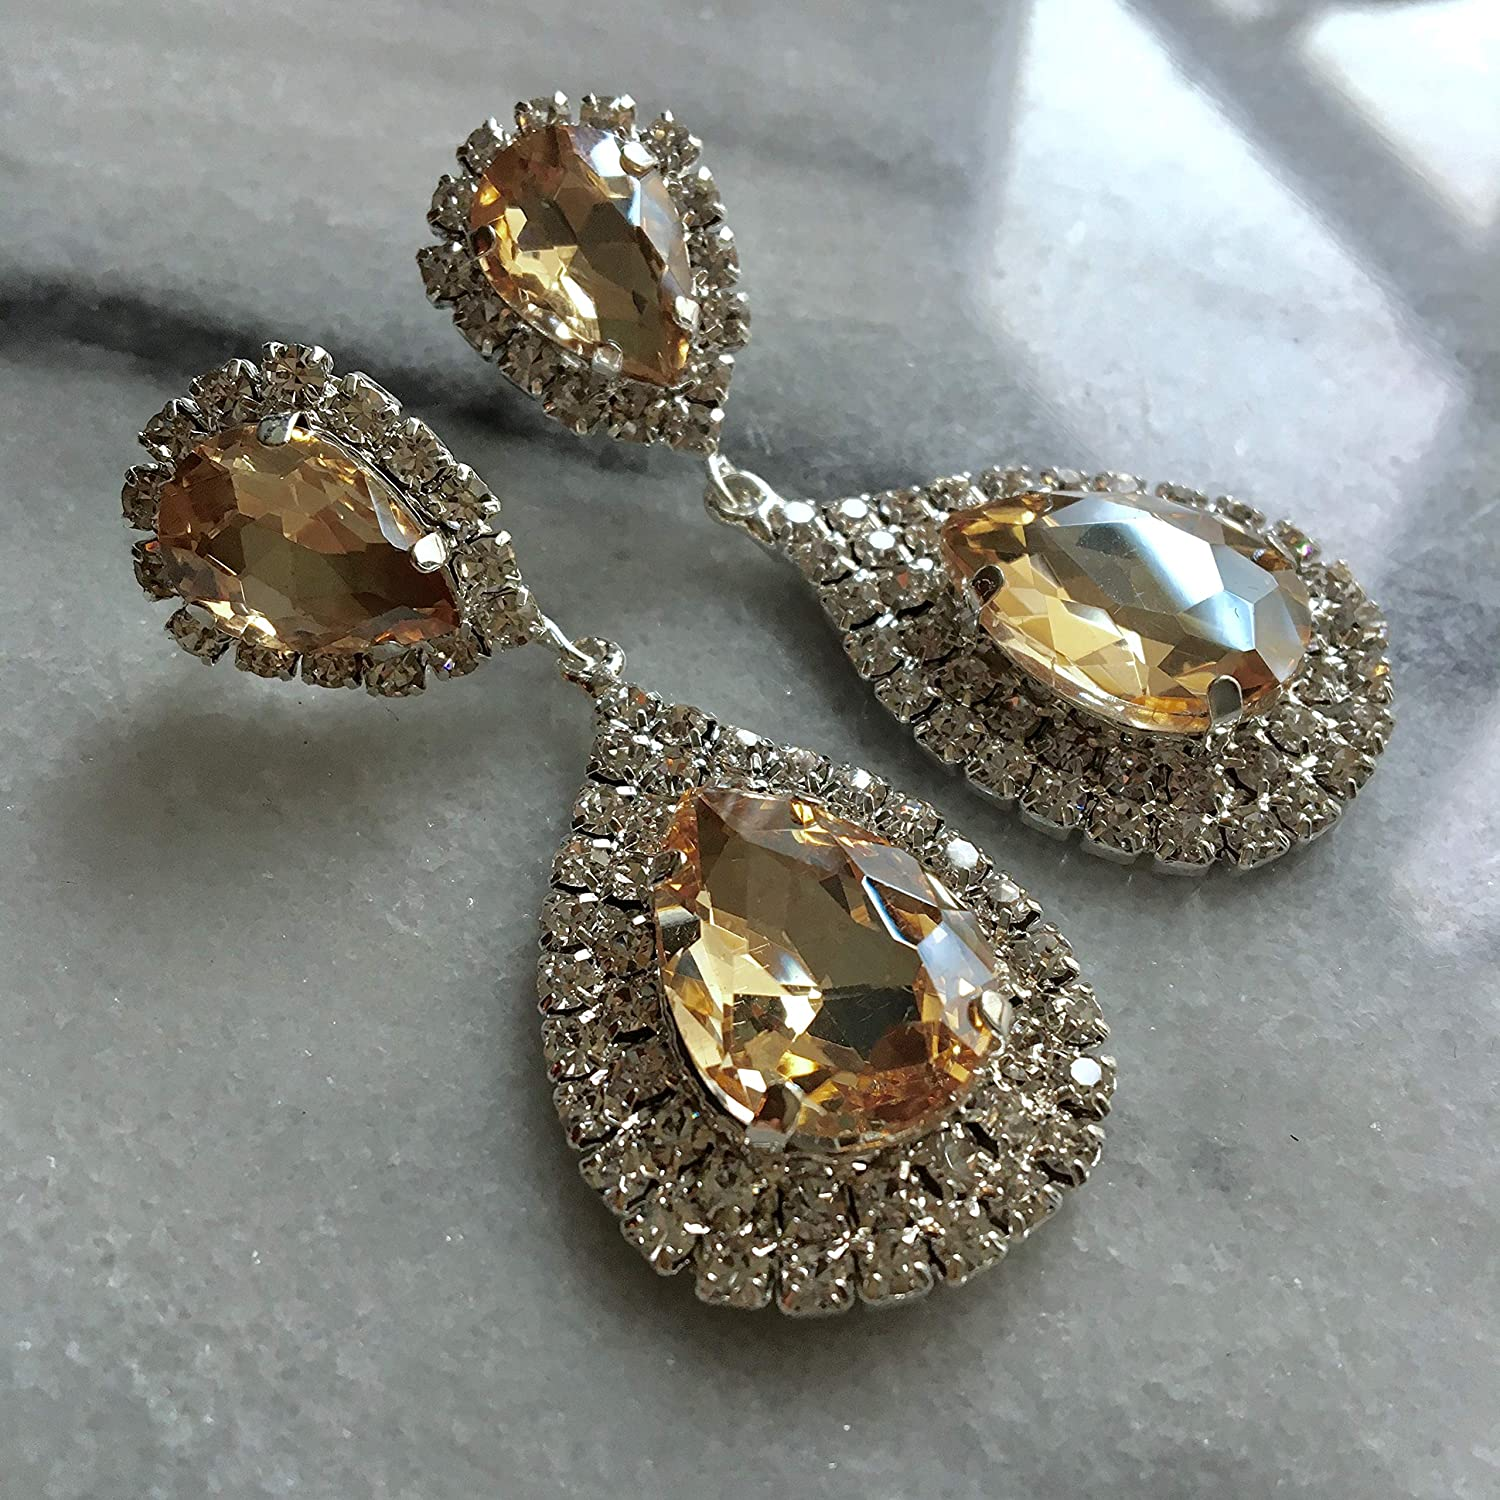 Crystal Vintage Art Deco Style Earrings,Bohemian,Drop Dangle,40s 50s Hollywood Glamour,1920\u2019s Gatsby,Showgirl,Pageant,Prom,Bridal,Burlesque